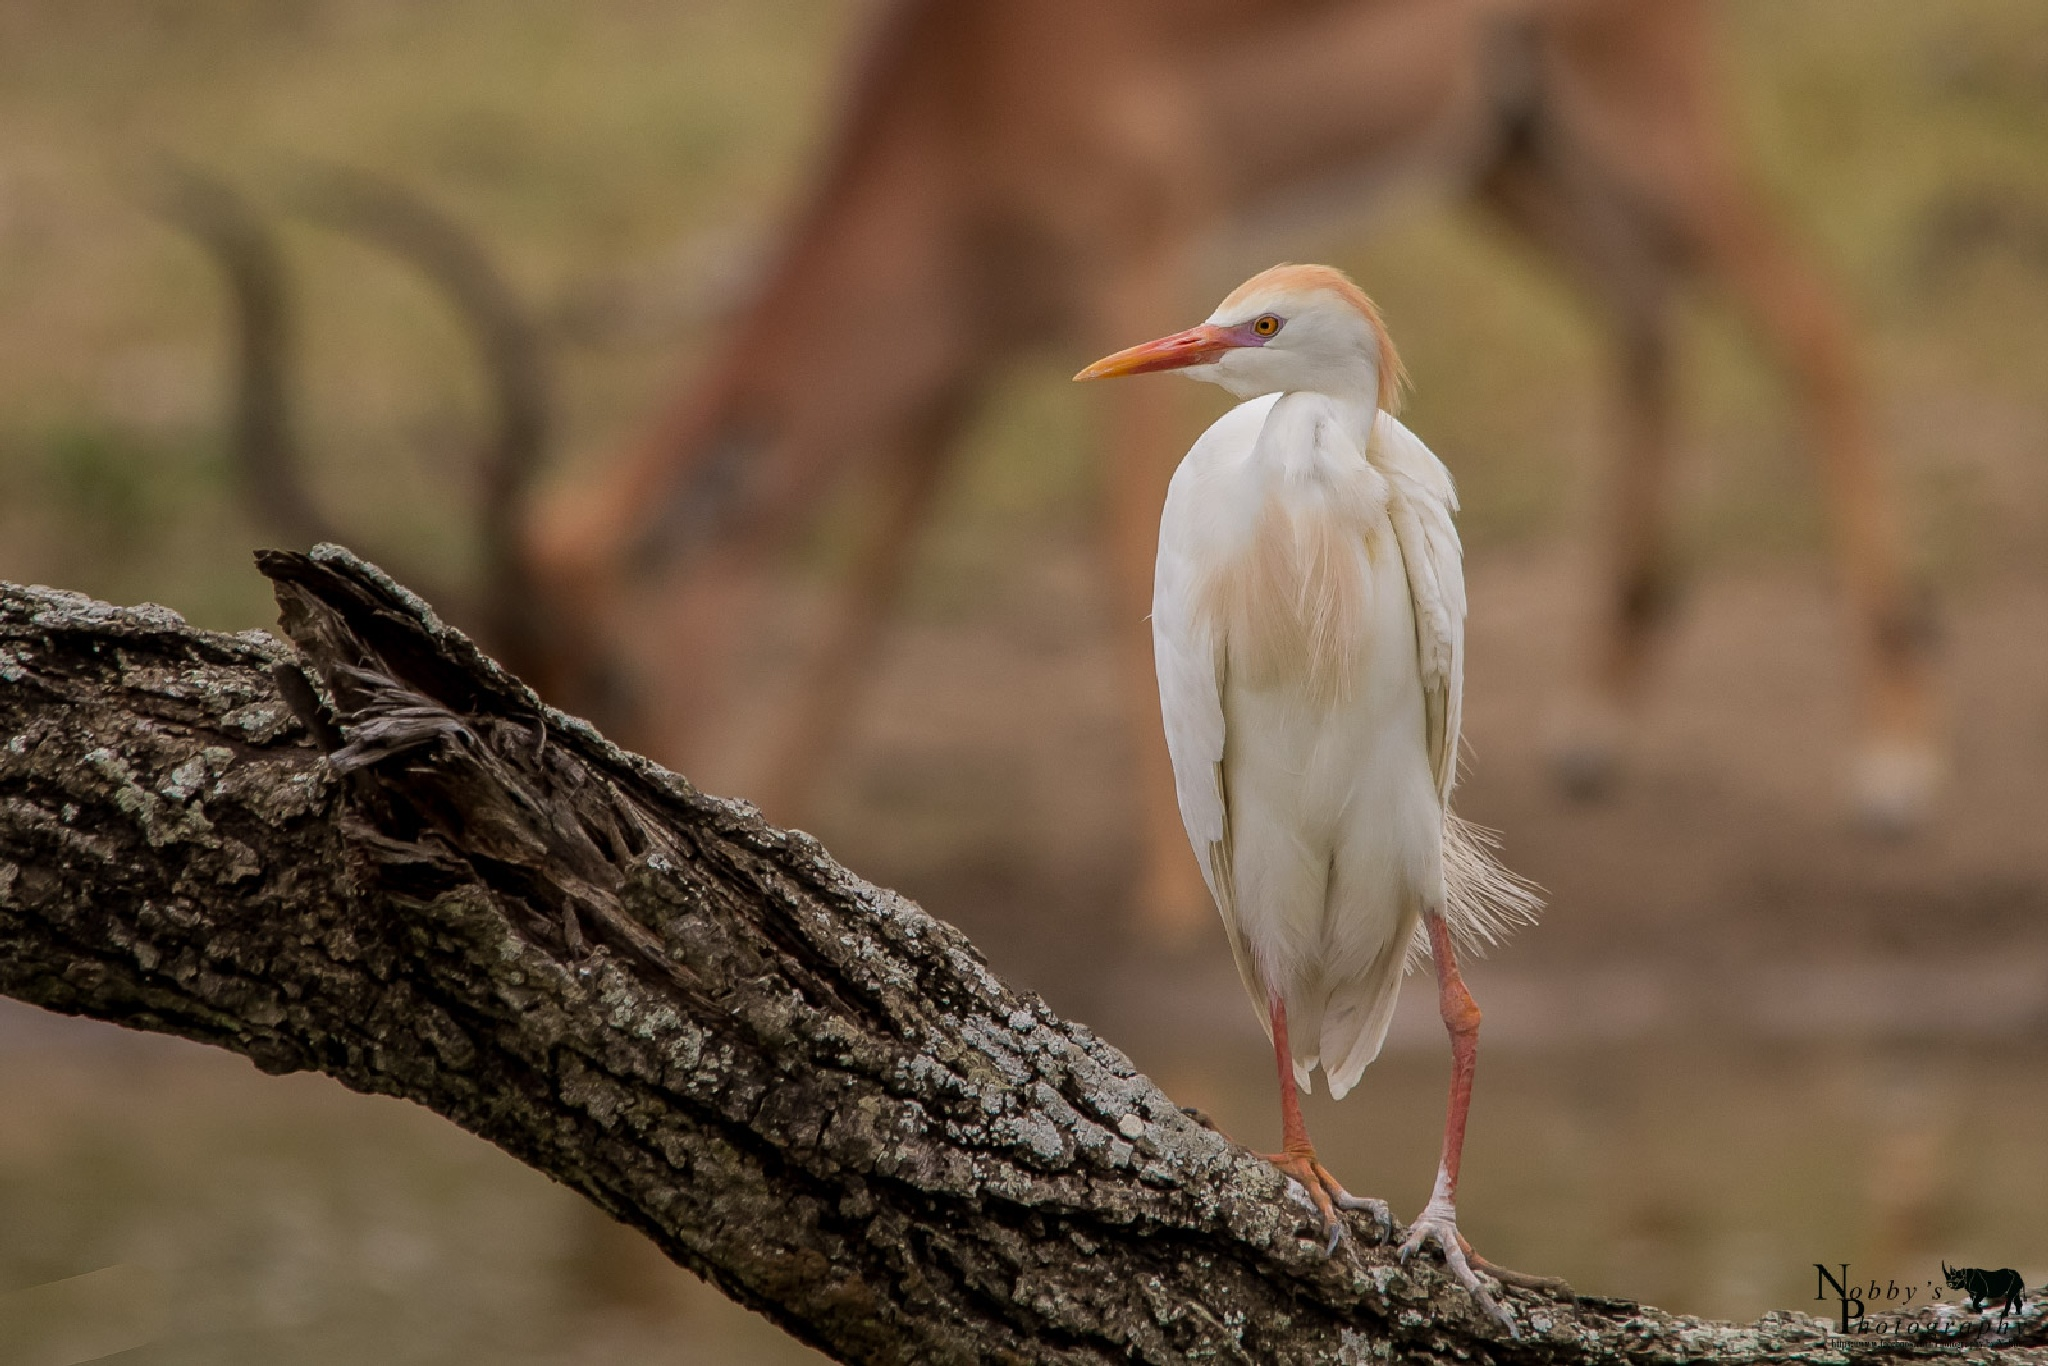 A lonel Egret by Nobby Clarke